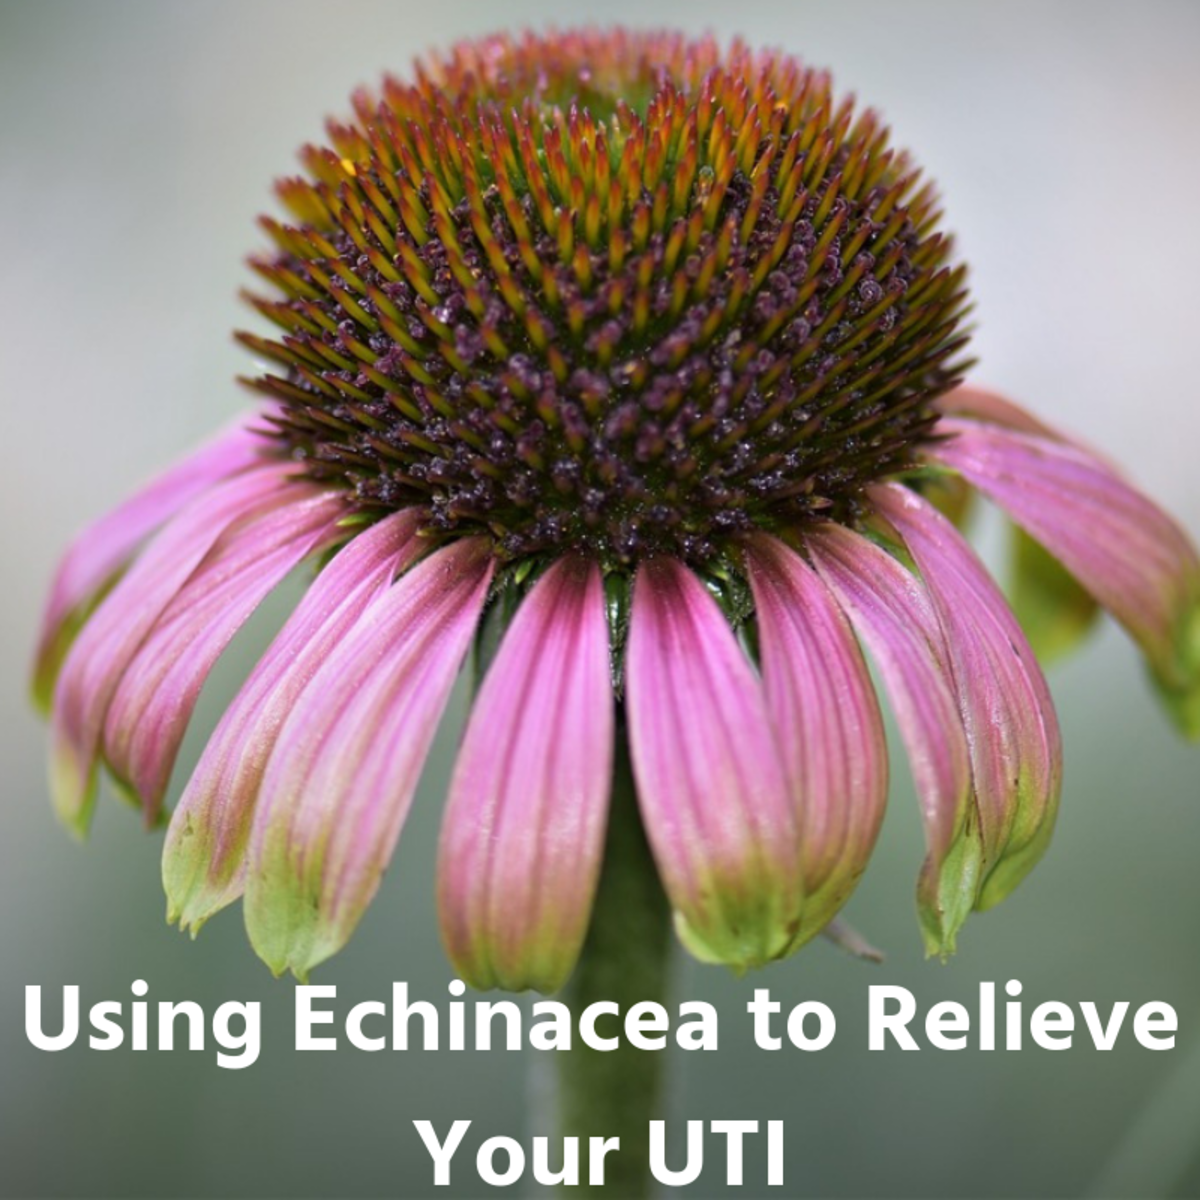 Echinacea can get rid of a UTI quickly and effectively.